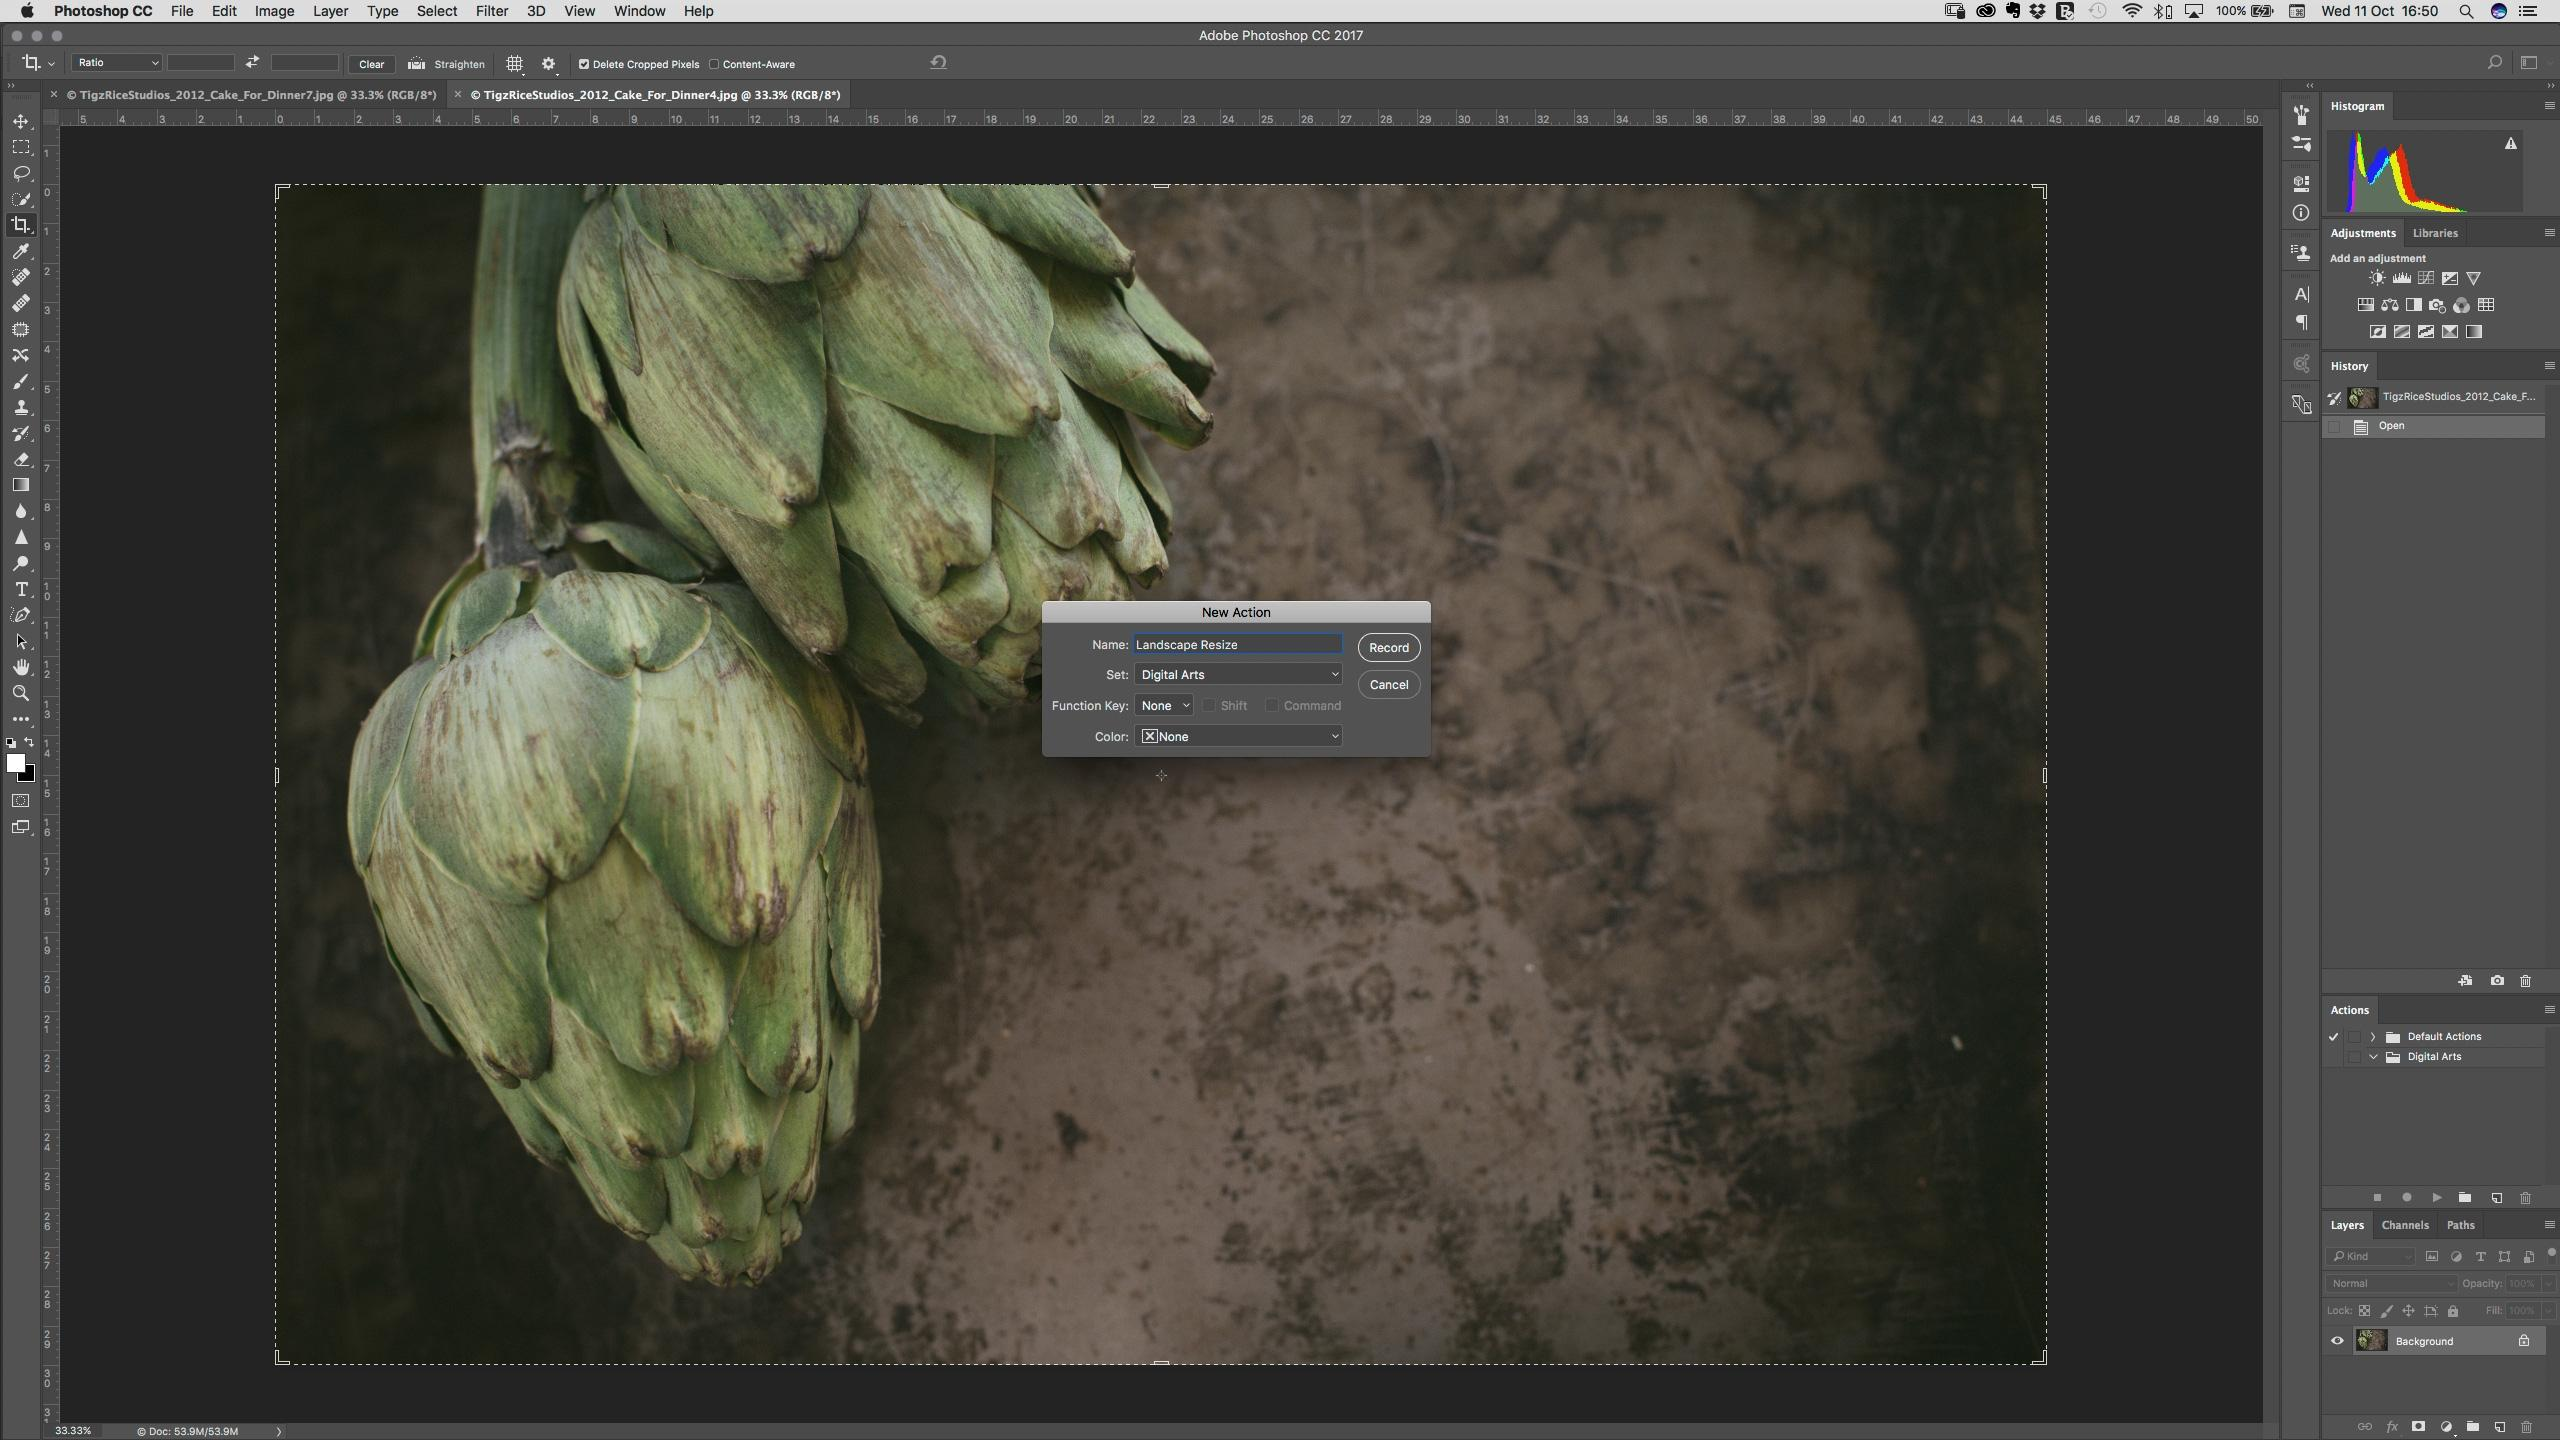 89 Best Photoshop Tutorials: Photoshop Ideas, Tips, Tricks